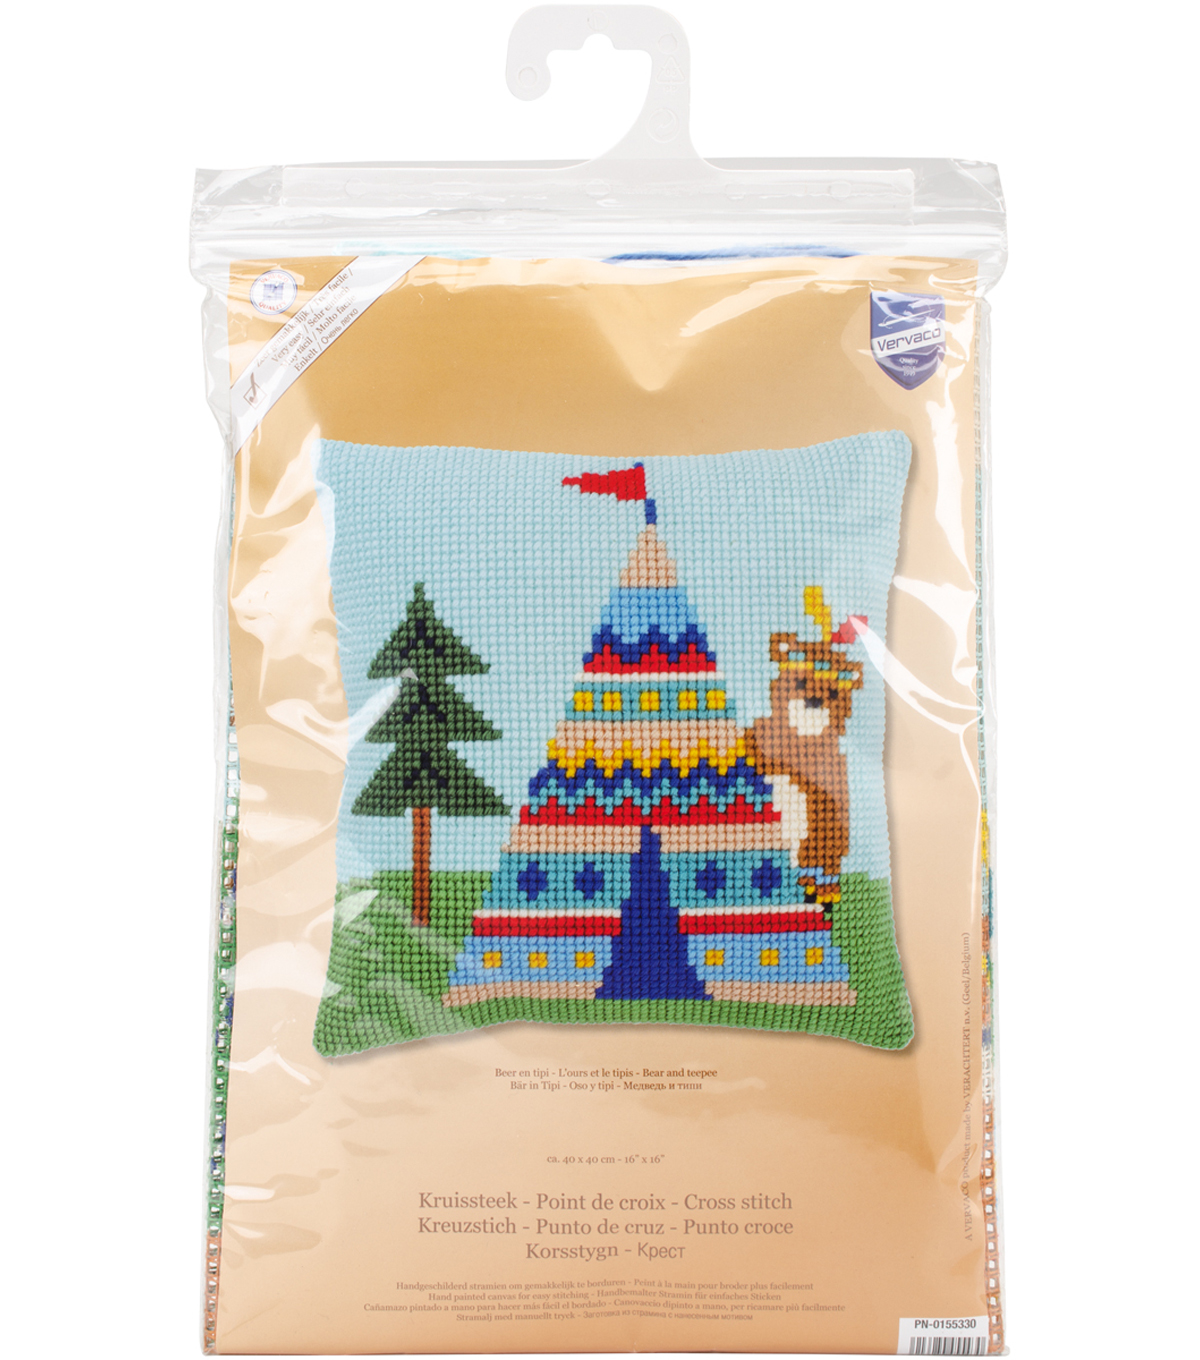 Vervaco 16\u0027\u0027x16\u0027\u0027 Cushion Cross Stitch Kit-Bear & Teepee